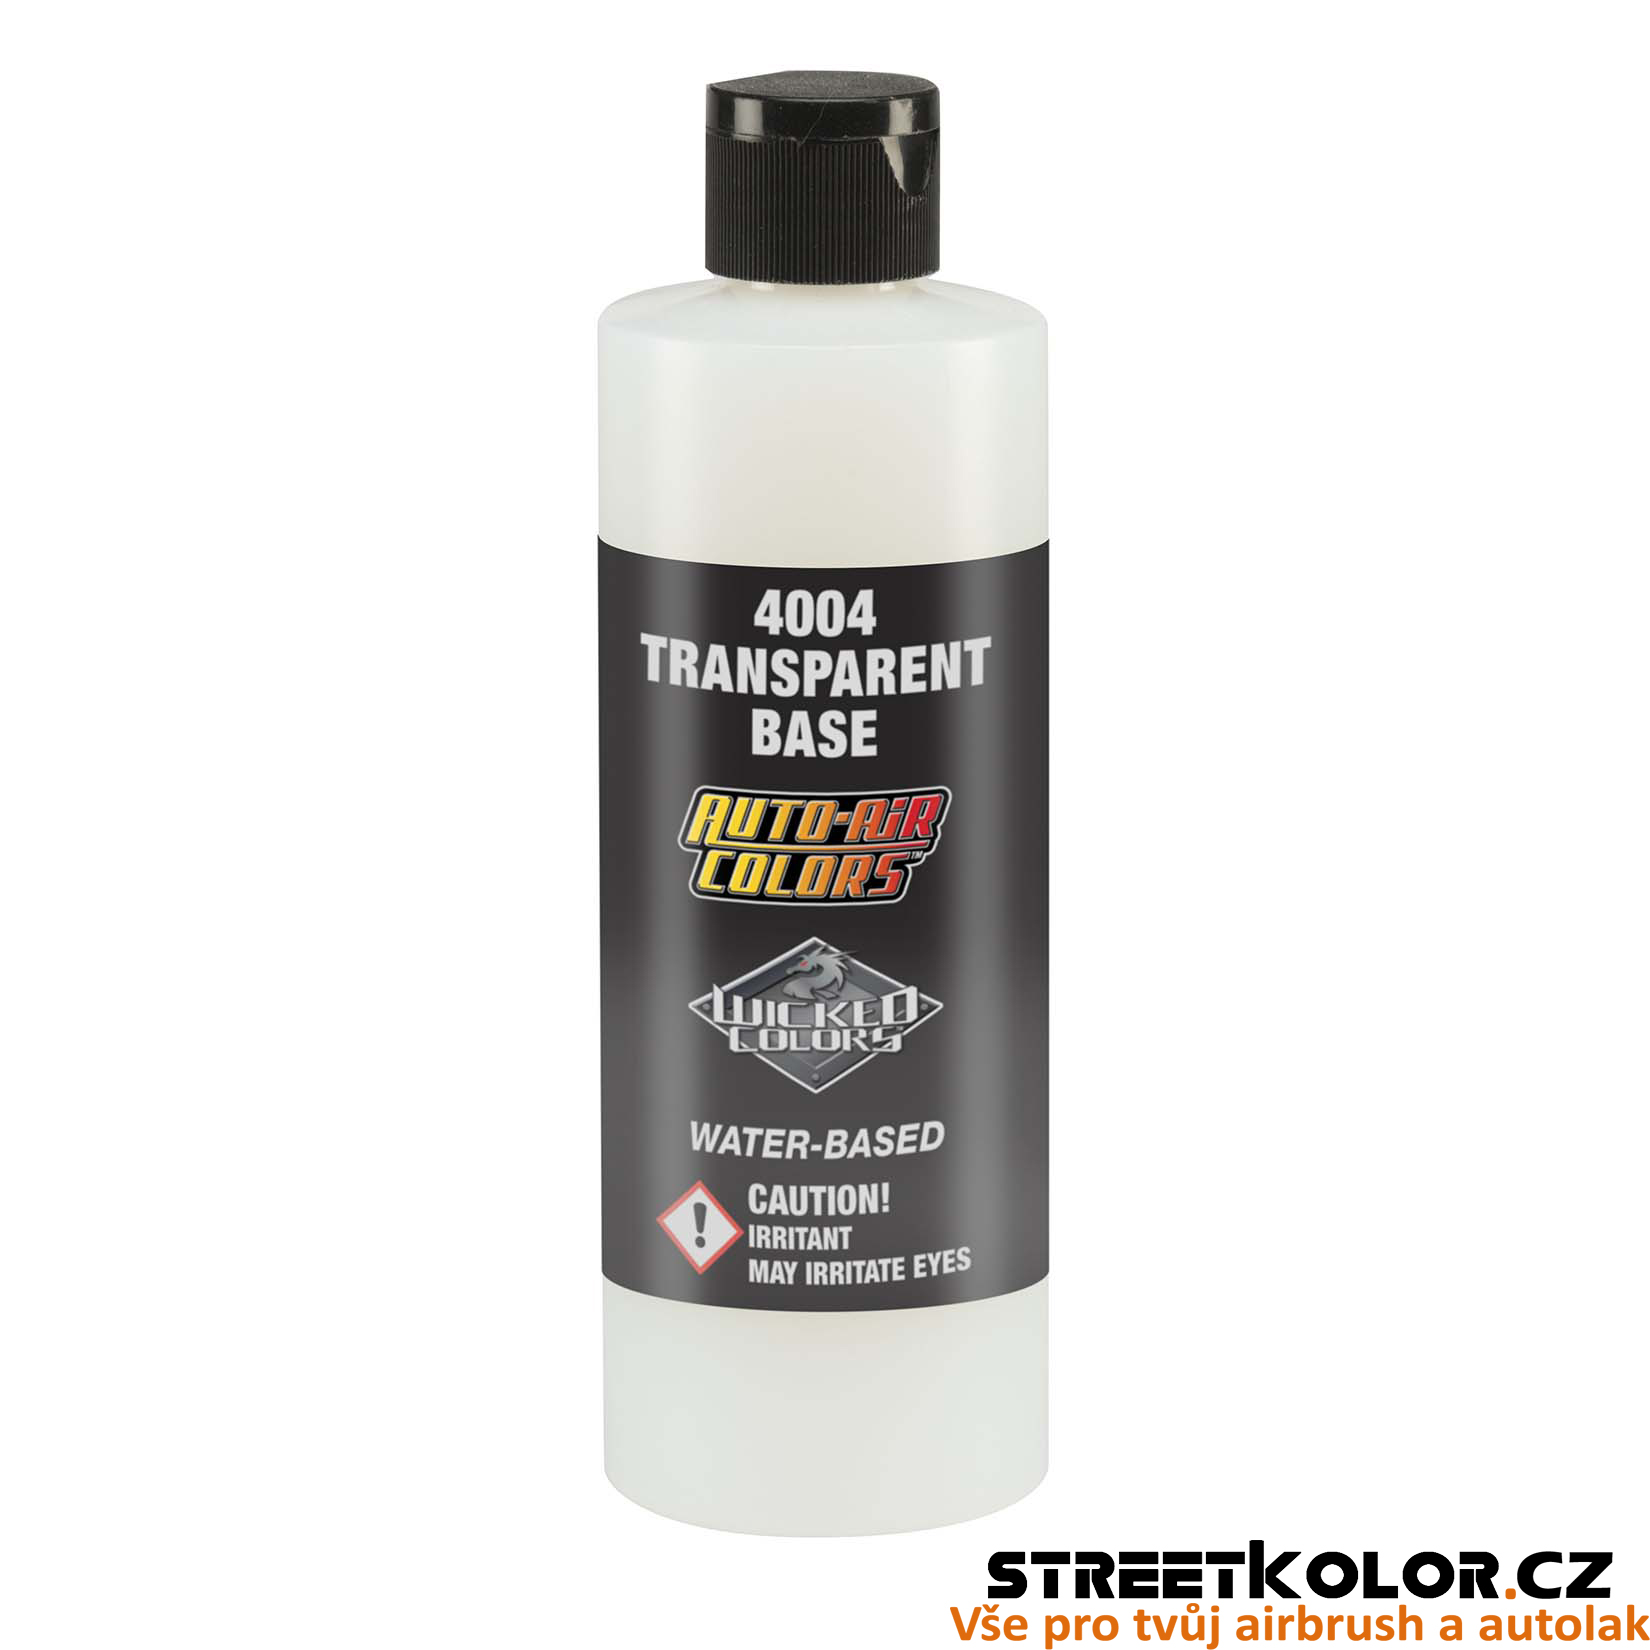 Auto Air/Wicked 4004 transparentní báze 120 ml